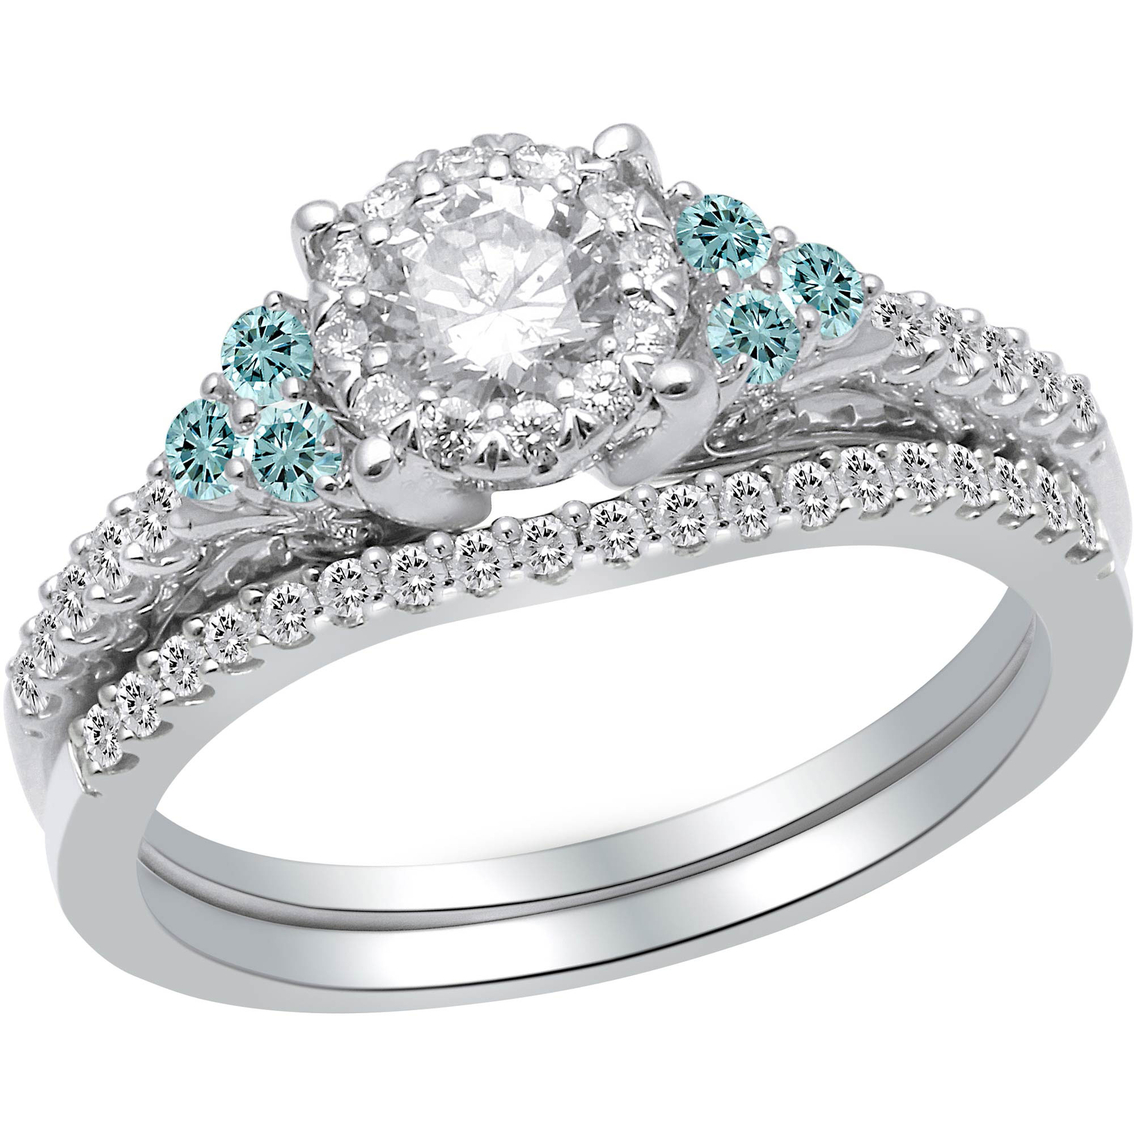 Clearance Bridal Sets: Wedding ring kay jewelers clearance rings.